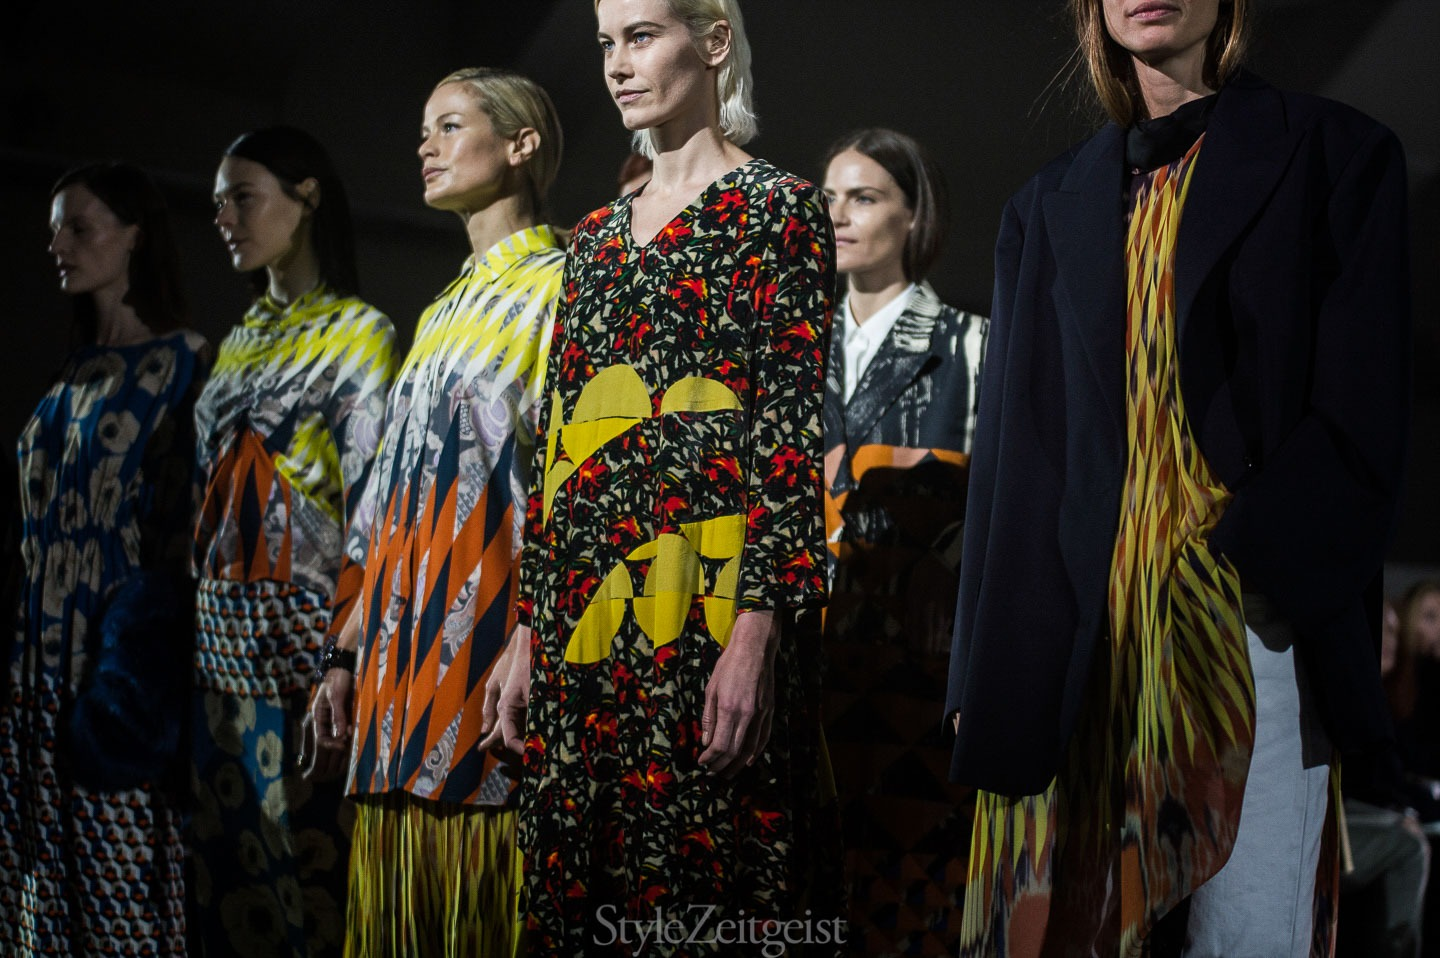 StyleZeitgeist Dries Van Noten F/W17 Women's - Paris Fashion    StyleZeitgeist Dries Van Noten F/W17 Women's - Paris Fashion    StyleZeitgeist Dries Van Noten F/W17 Women's - Paris Fashion    StyleZeitgeist Dries Van Noten F/W17 Women's - Paris Fashion    StyleZeitgeist Dries Van Noten F/W17 Women's - Paris Fashion    StyleZeitgeist Dries Van Noten F/W17 Women's - Paris Fashion    StyleZeitgeist Dries Van Noten F/W17 Women's - Paris Fashion    StyleZeitgeist Dries Van Noten F/W17 Women's - Paris Fashion    StyleZeitgeist Dries Van Noten F/W17 Women's - Paris Fashion    StyleZeitgeist Dries Van Noten F/W17 Women's - Paris Fashion    StyleZeitgeist Dries Van Noten F/W17 Women's - Paris Fashion    StyleZeitgeist Dries Van Noten F/W17 Women's - Paris Fashion    StyleZeitgeist Dries Van Noten F/W17 Women's - Paris Fashion    StyleZeitgeist Dries Van Noten F/W17 Women's - Paris Fashion